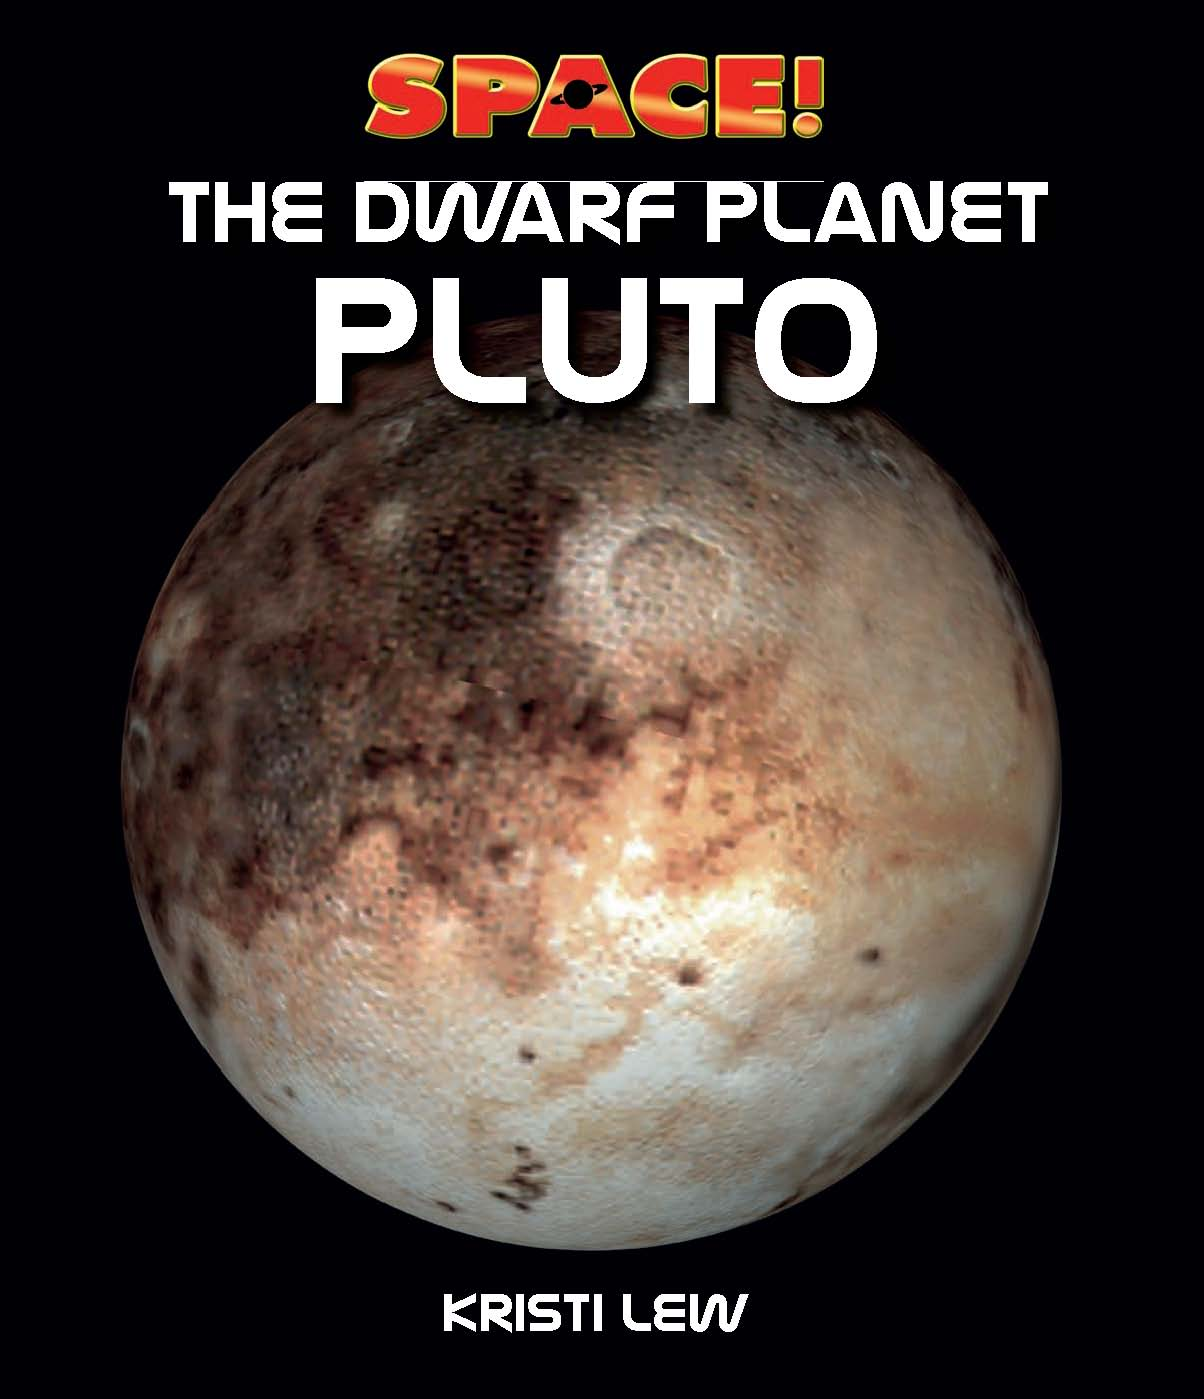 Free download: [Ebook] Pluto (Space)